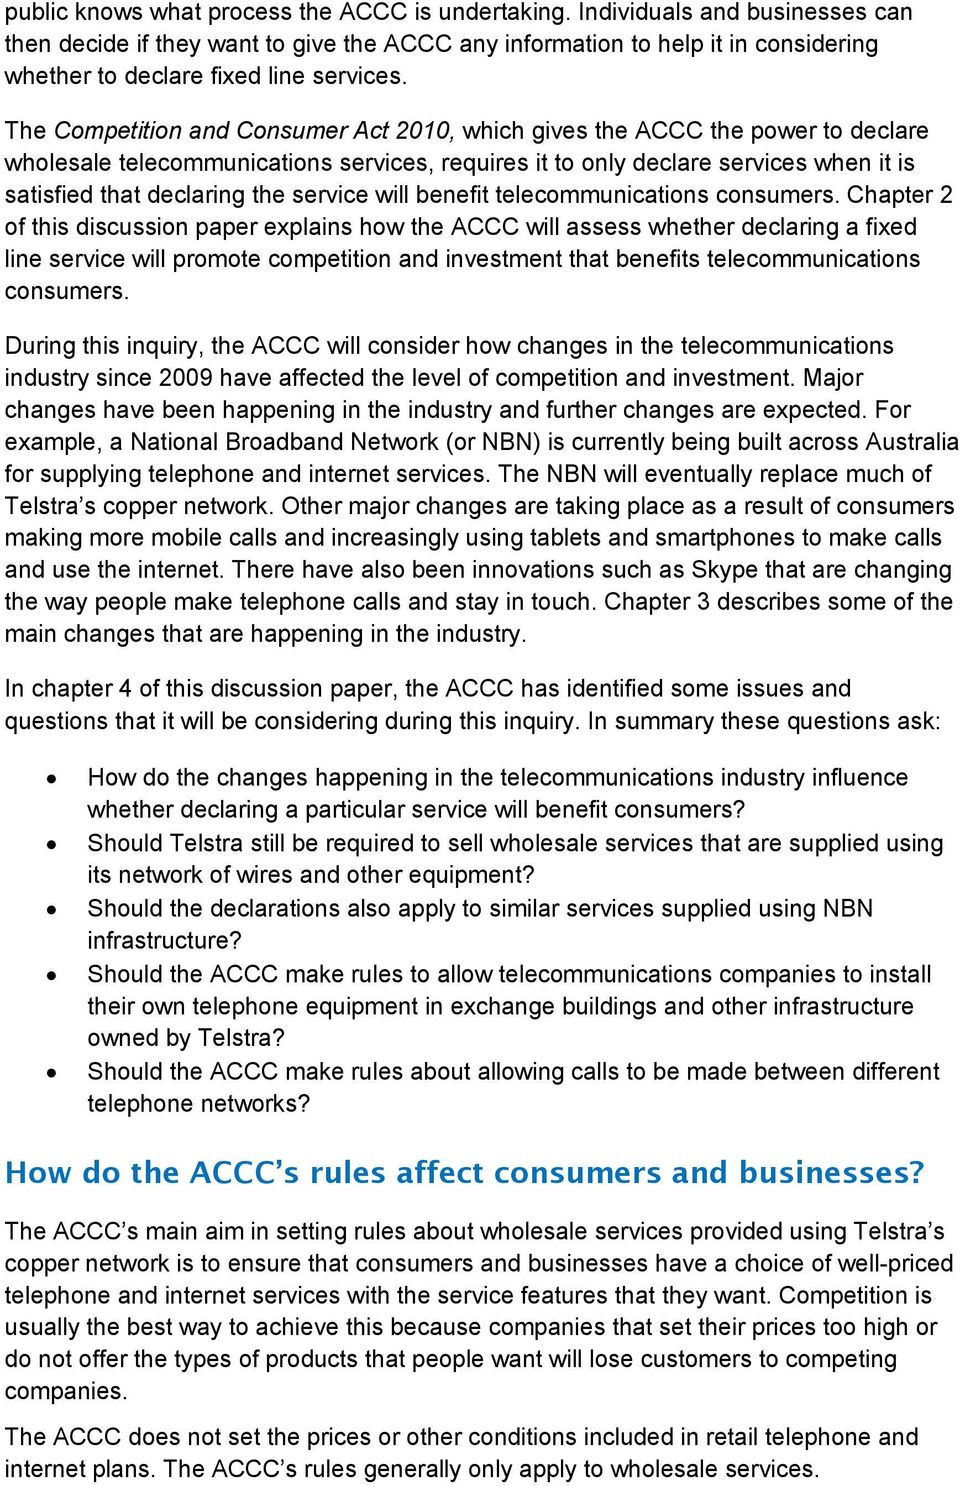 The Competition and Consumer Act 2010, which gives the ACCC the power to declare wholesale telecommunications services, requires it to only declare services when it is satisfied that declaring the